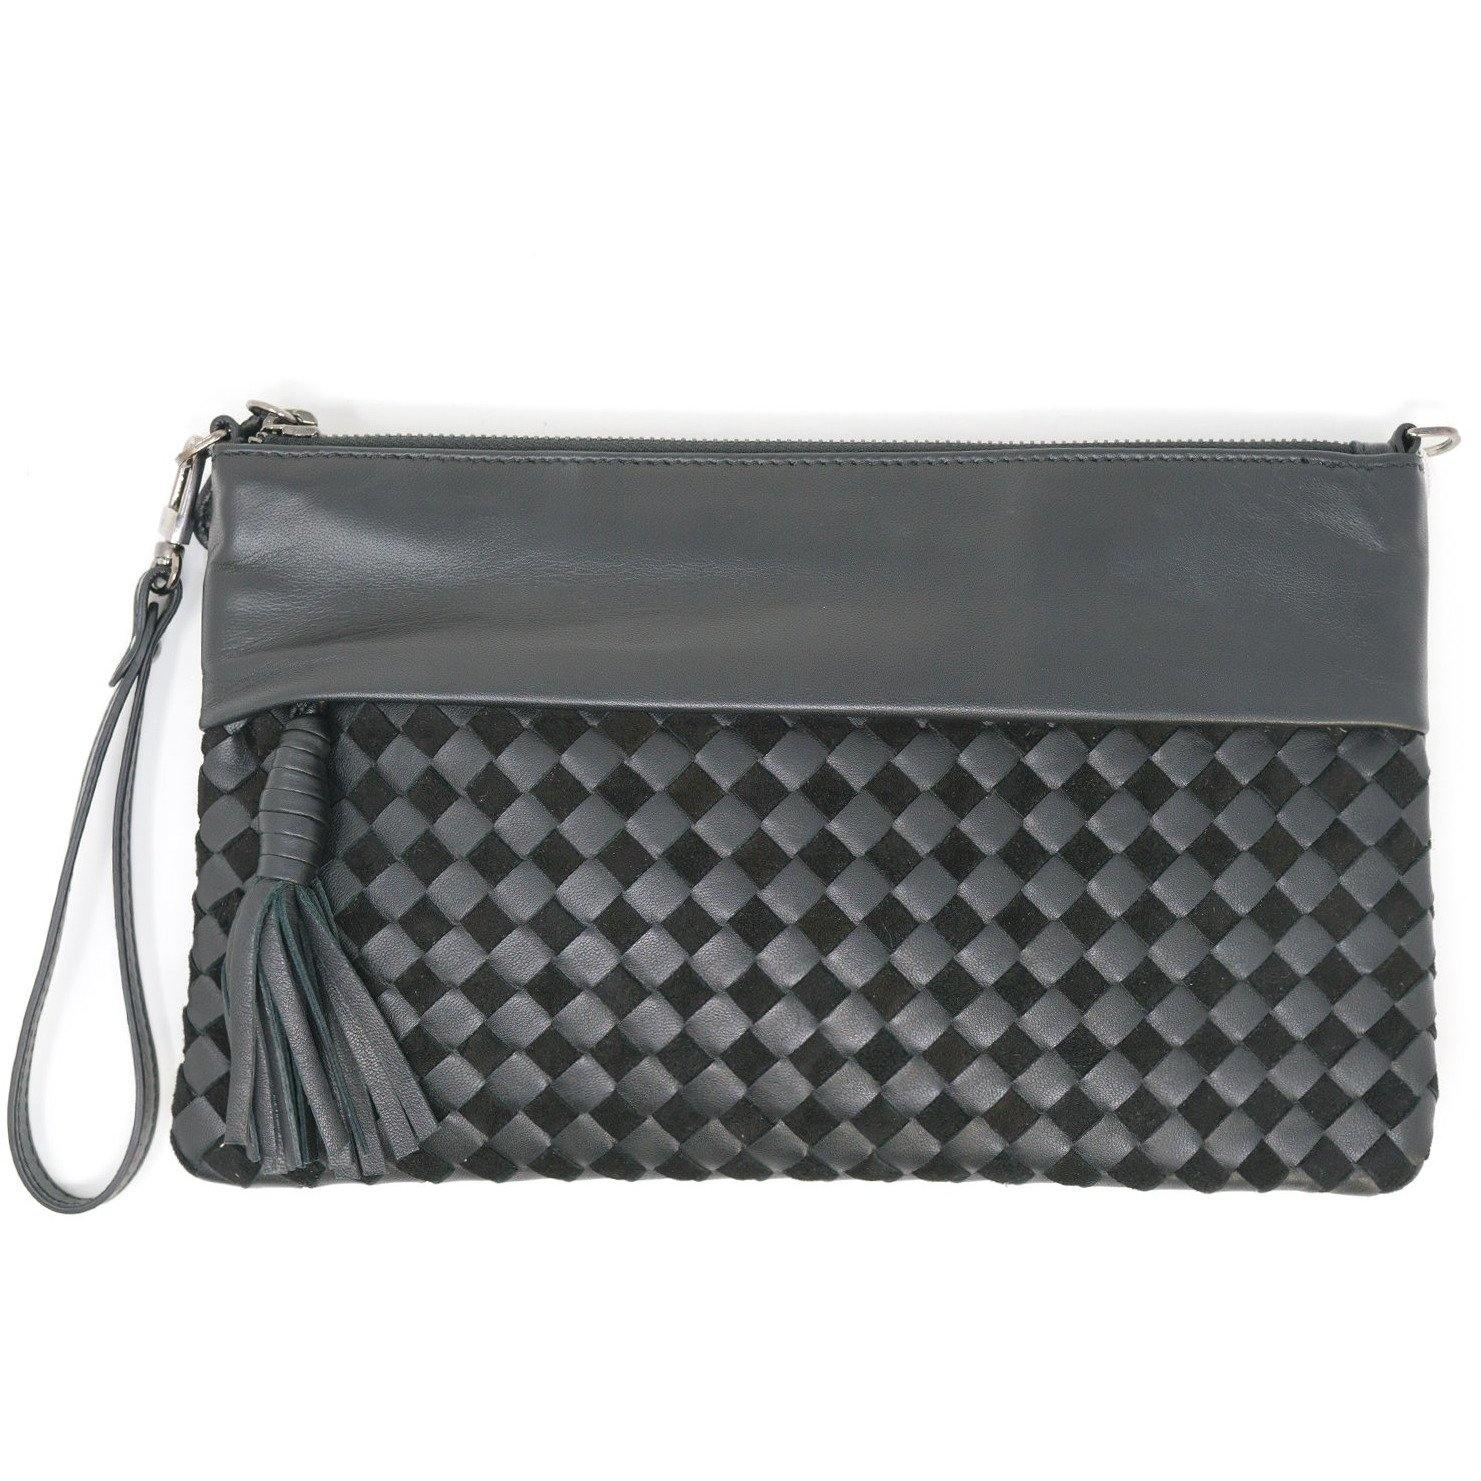 JT345 6479 Clutch - New Fall Winter 2019-2020 Collection